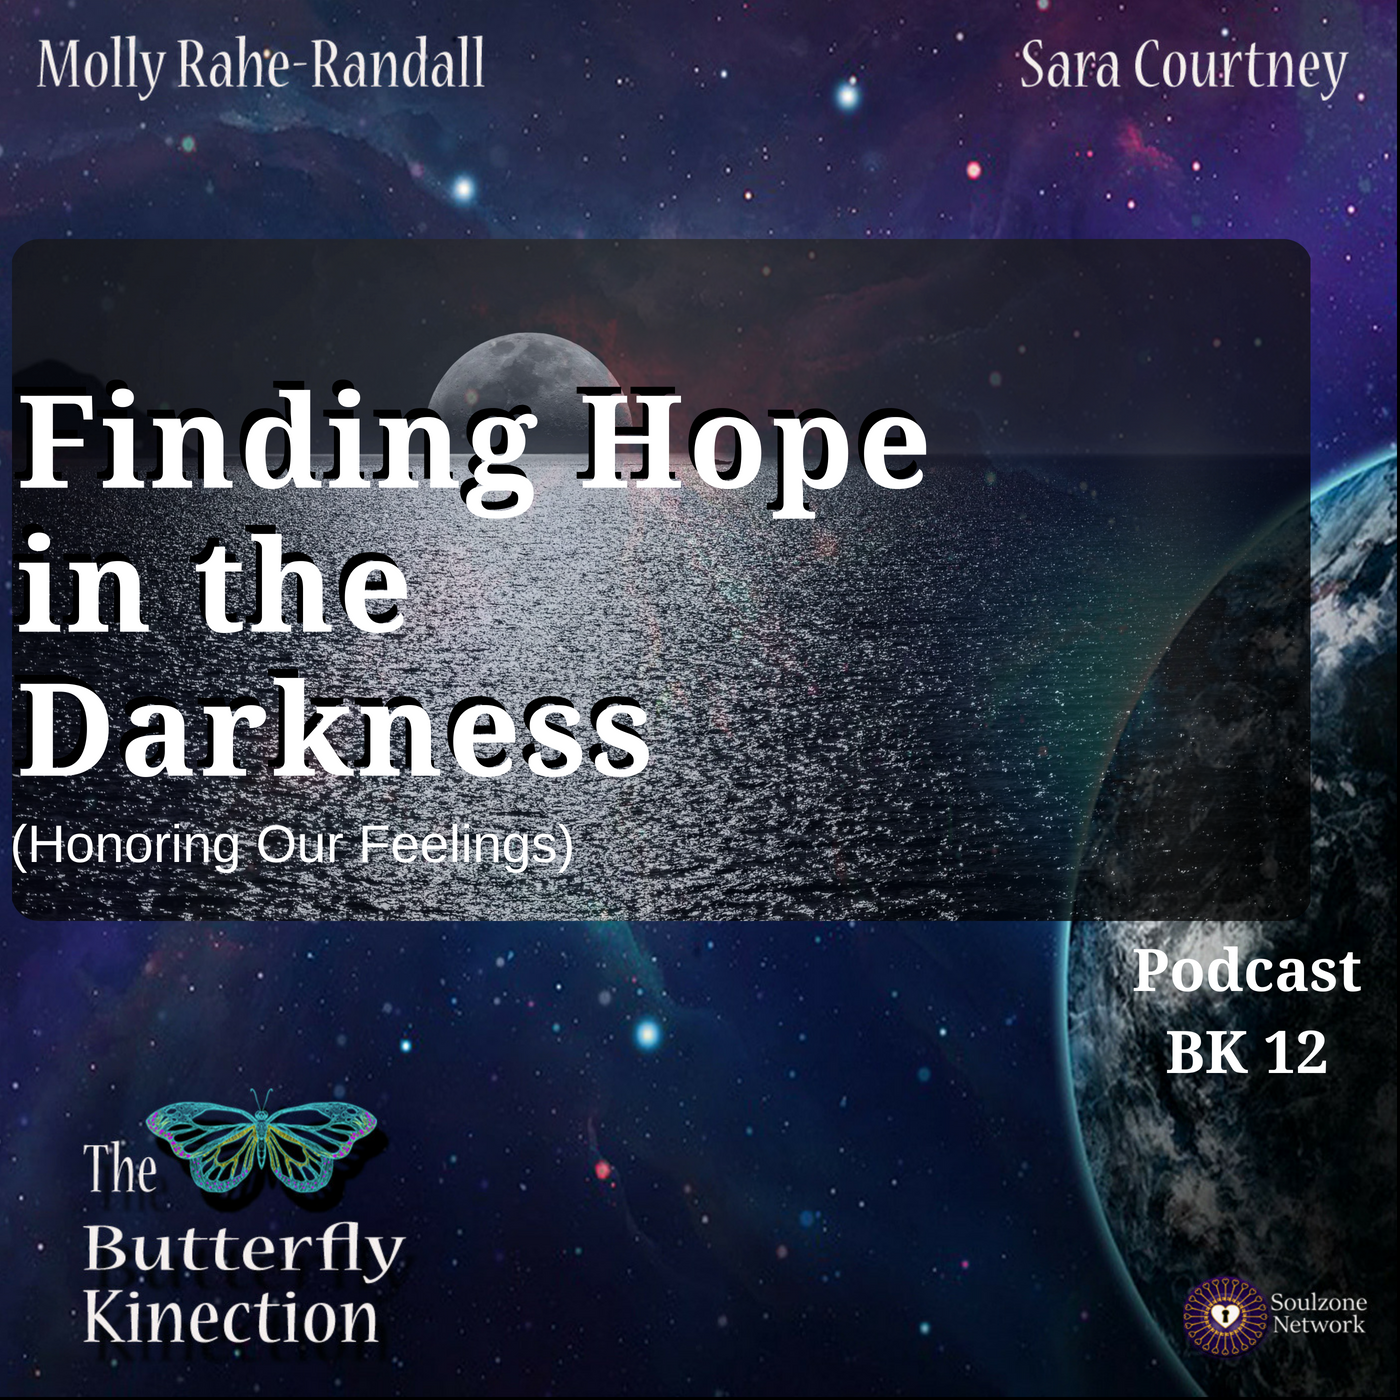 Finding Hope in the Darkness (Honoring our Feelings)